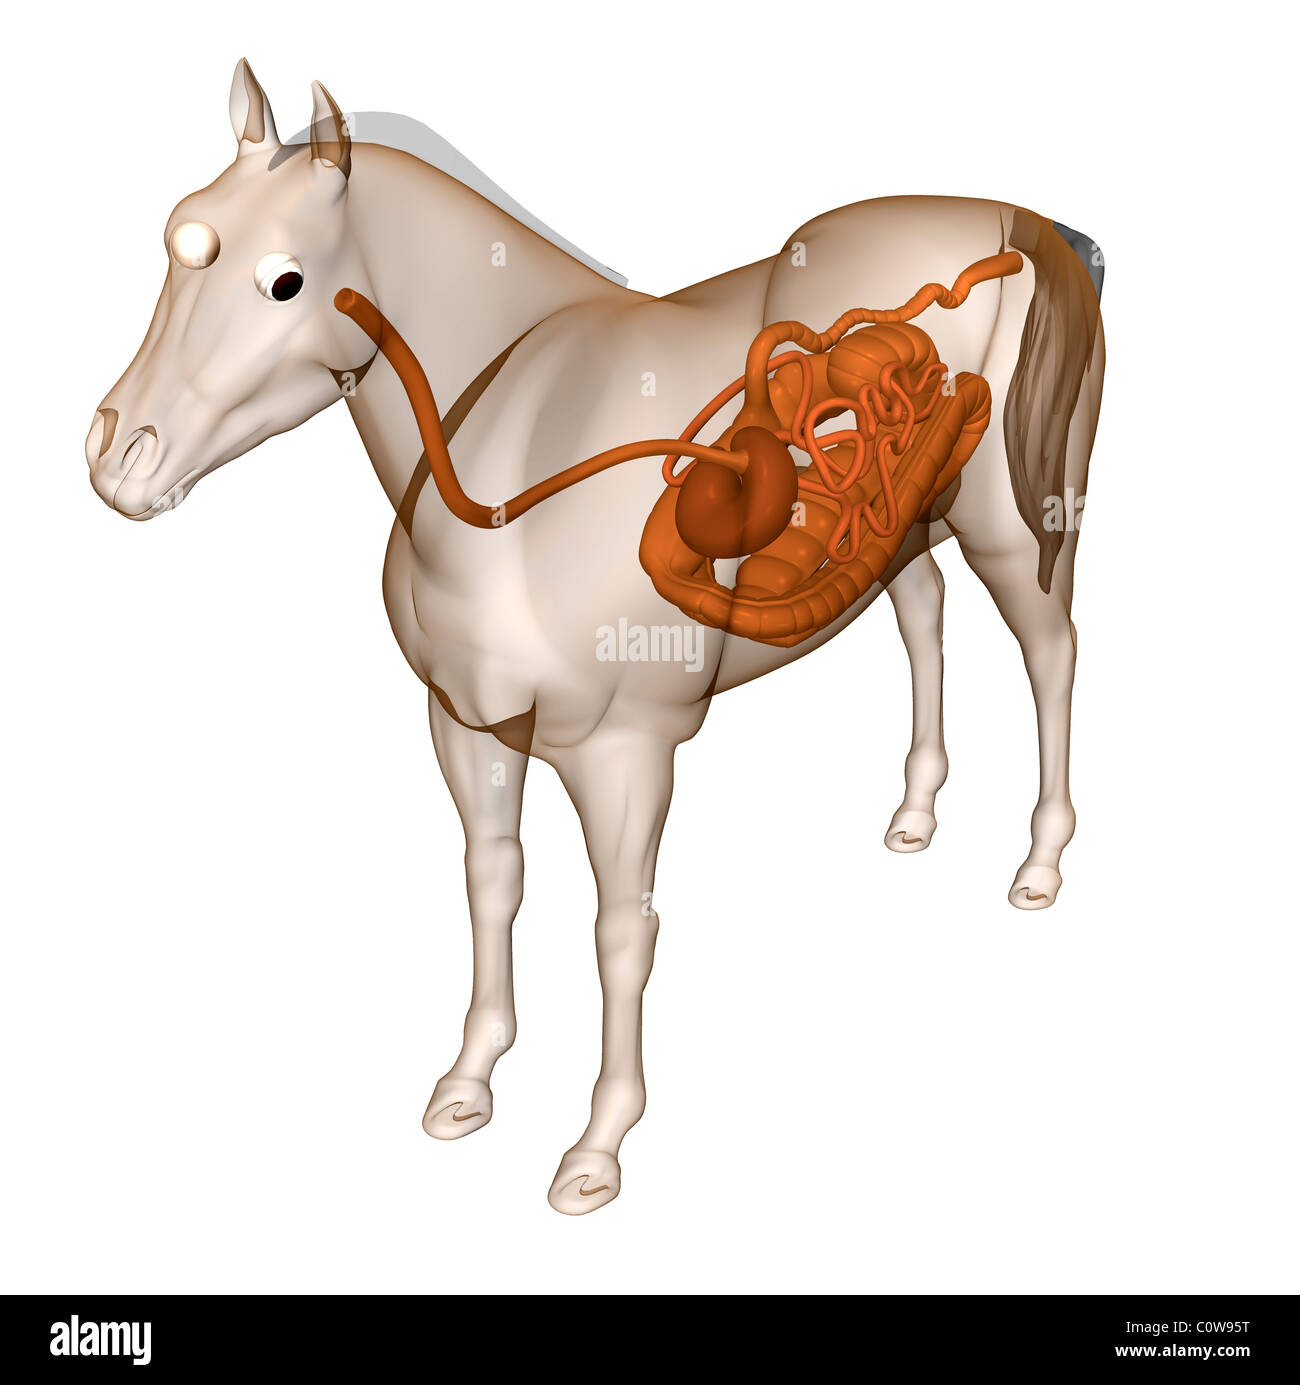 List Of Synonyms And Antonyms Of The Word Horse Digestion